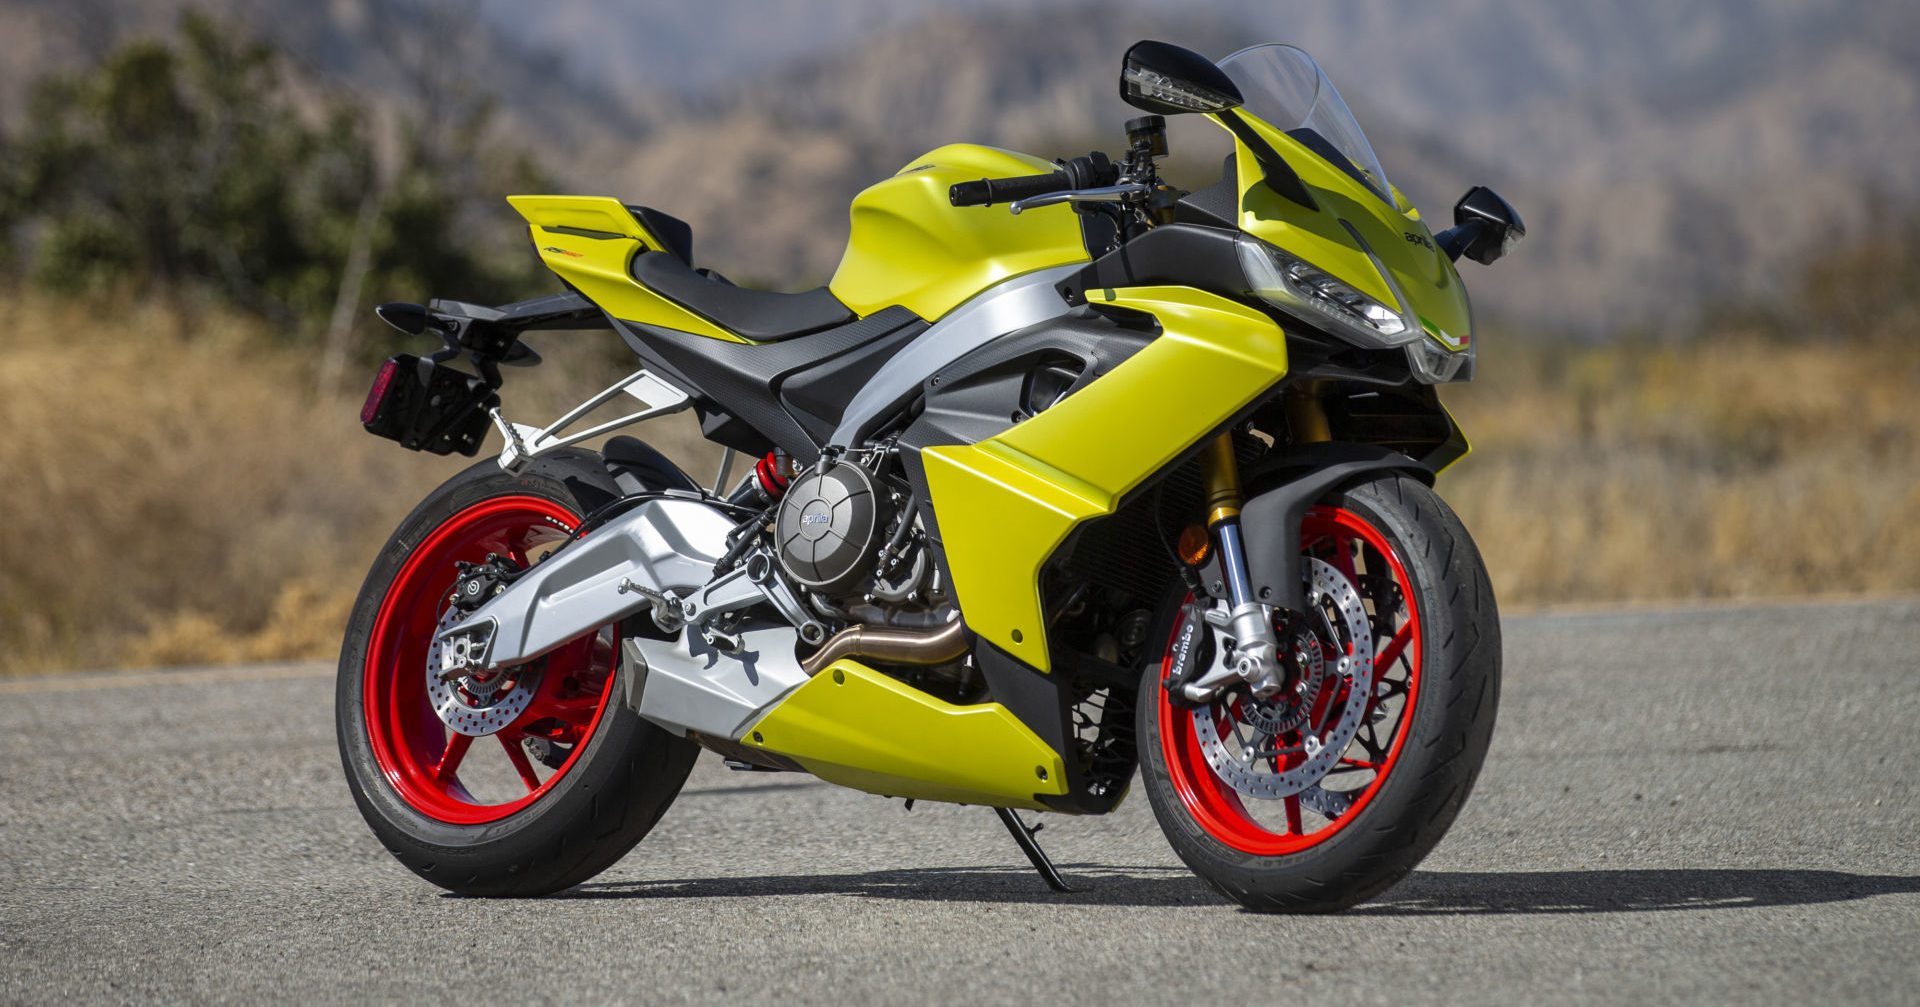 The Aprilia RS 660 is narrow and compact, while also offering a roomy riding position and all-day comfort. The middleweight twin offers a class-shattering array of technology and features. Photo by Kevin Wing, courtesy of Aprilia.